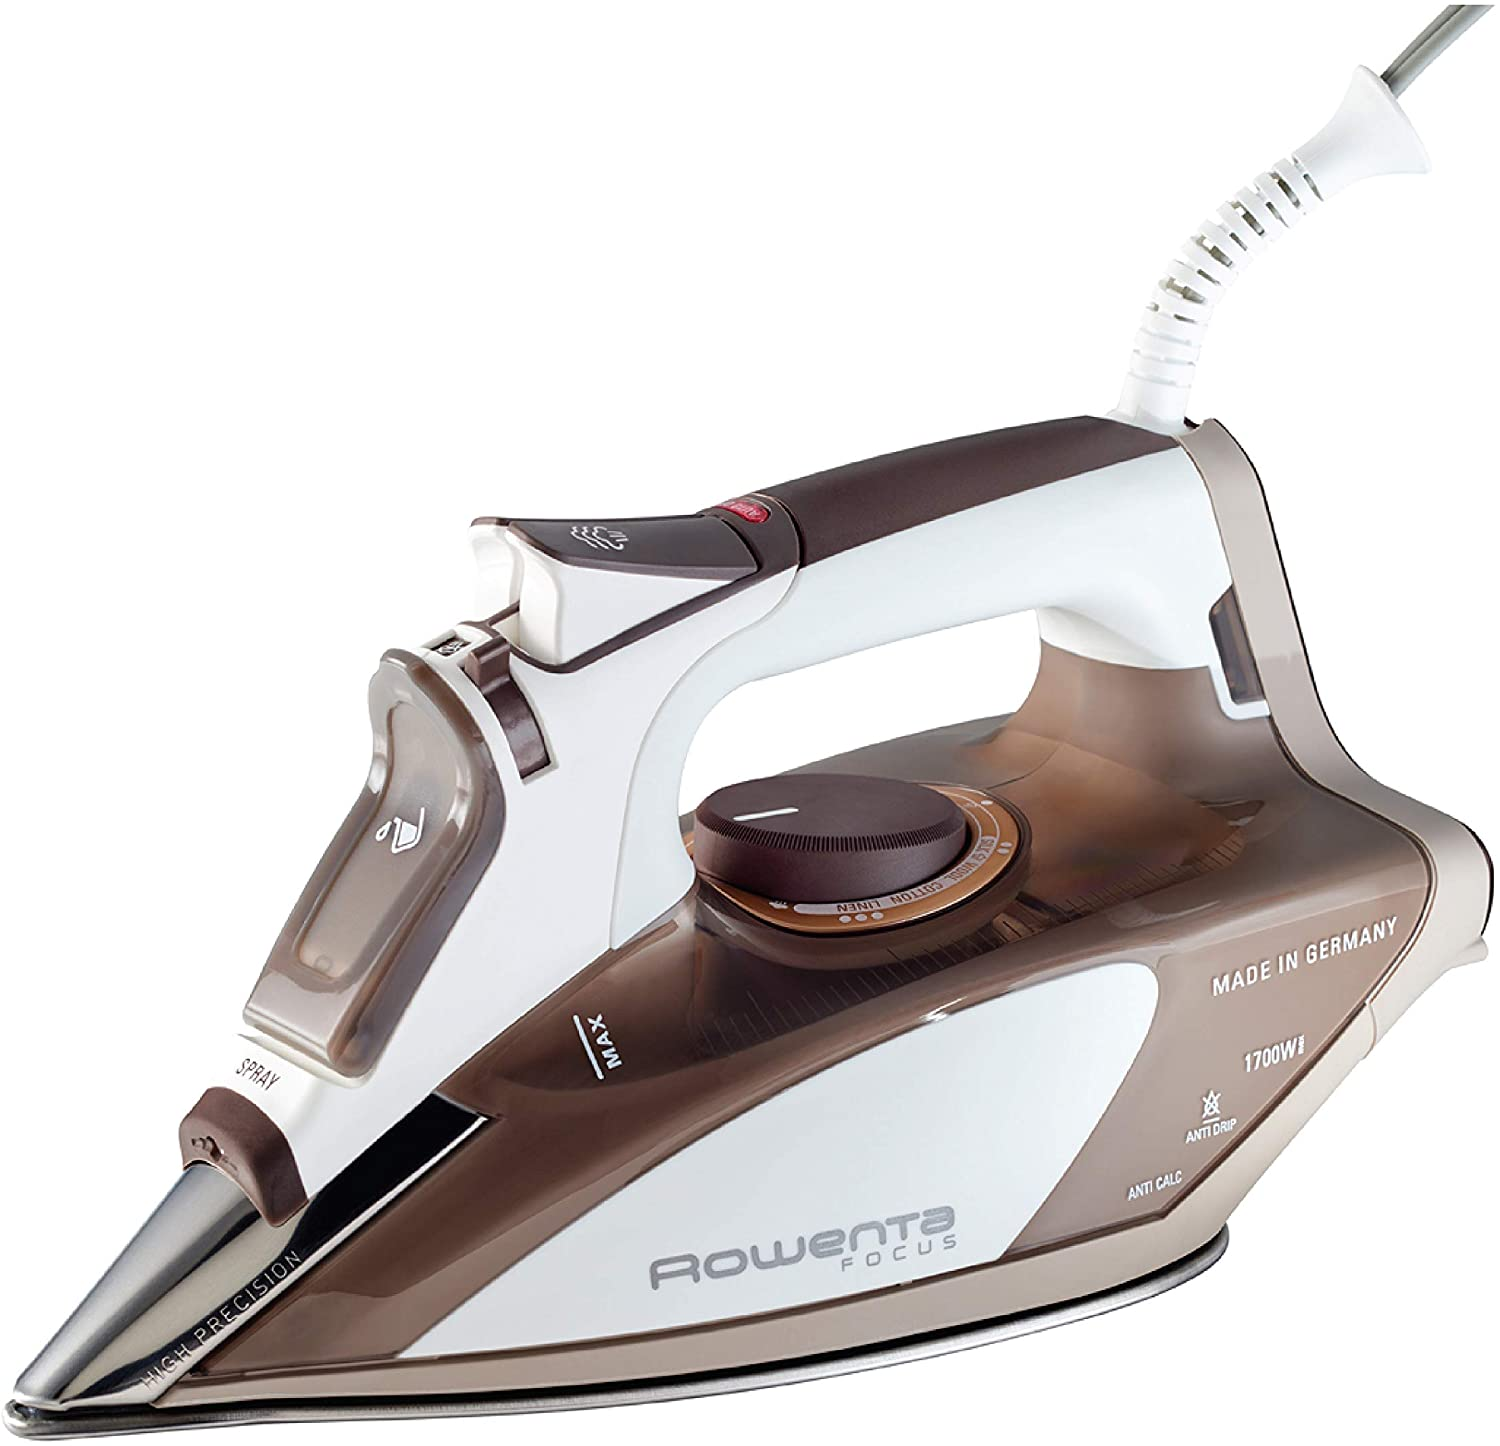 Rowenta DW5080 1700-Watt Micro Steam Iron Stainless Steel Soleplate with Auto-Off, 400-Hole, Brown Image